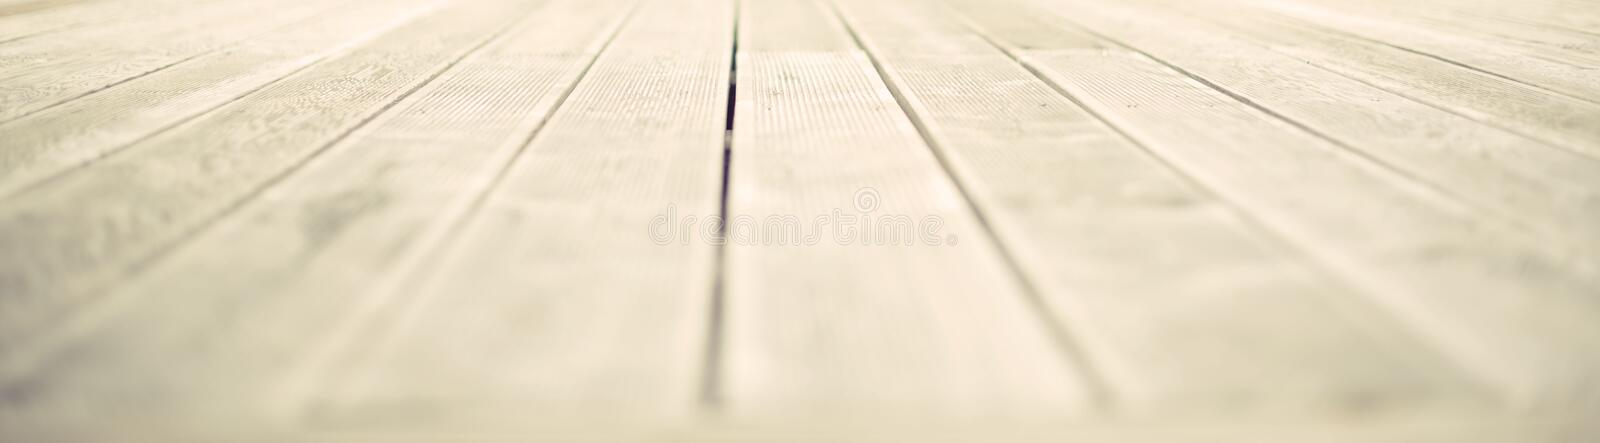 Banner Empty space on the desktop Old Natural Wooden Shabby Background. Banner Empty space on the desktop. Old Natural Wooden Shabby Background royalty free stock image